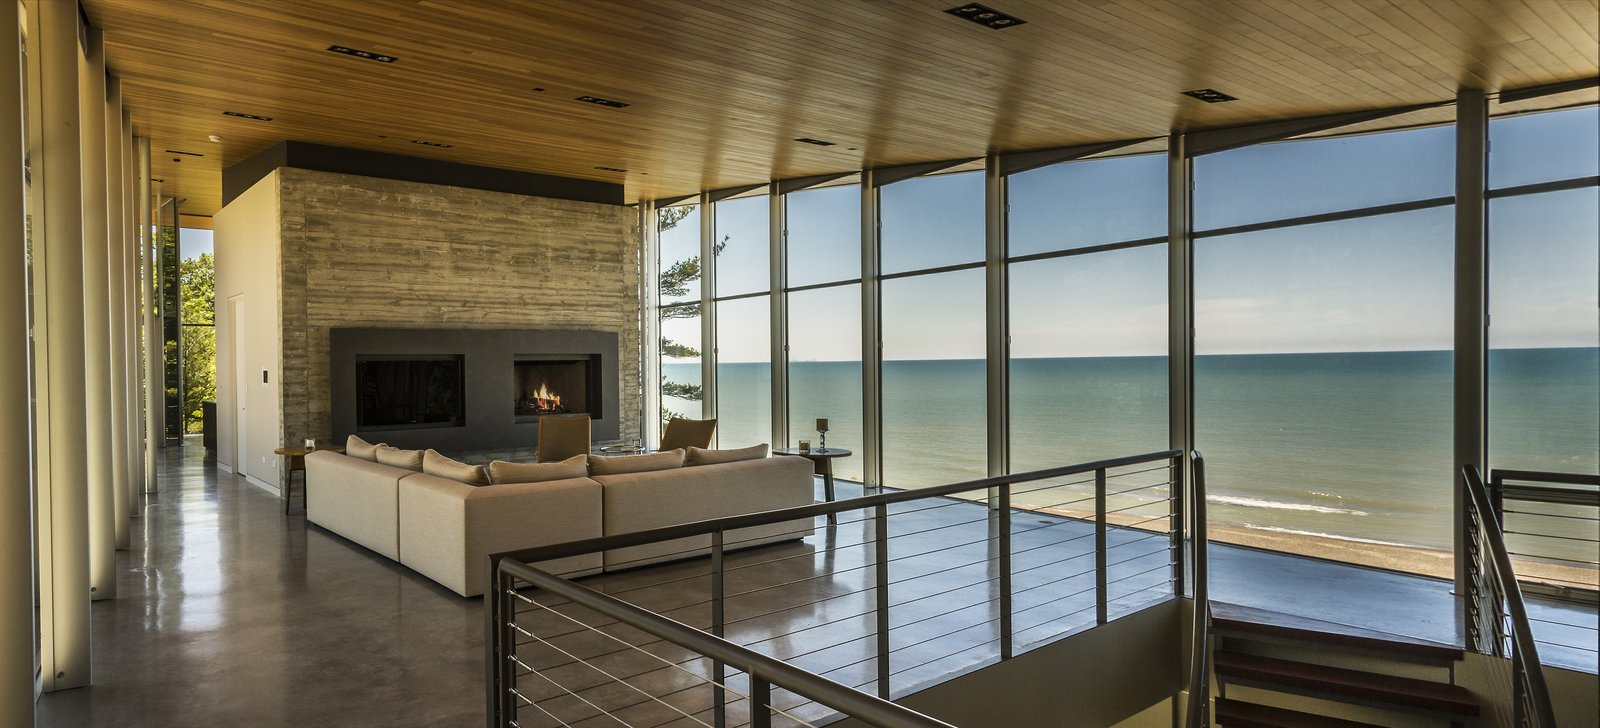 Living Room / View Towards Lake Michigan  Beverly Shores Residence by Booth Hansen